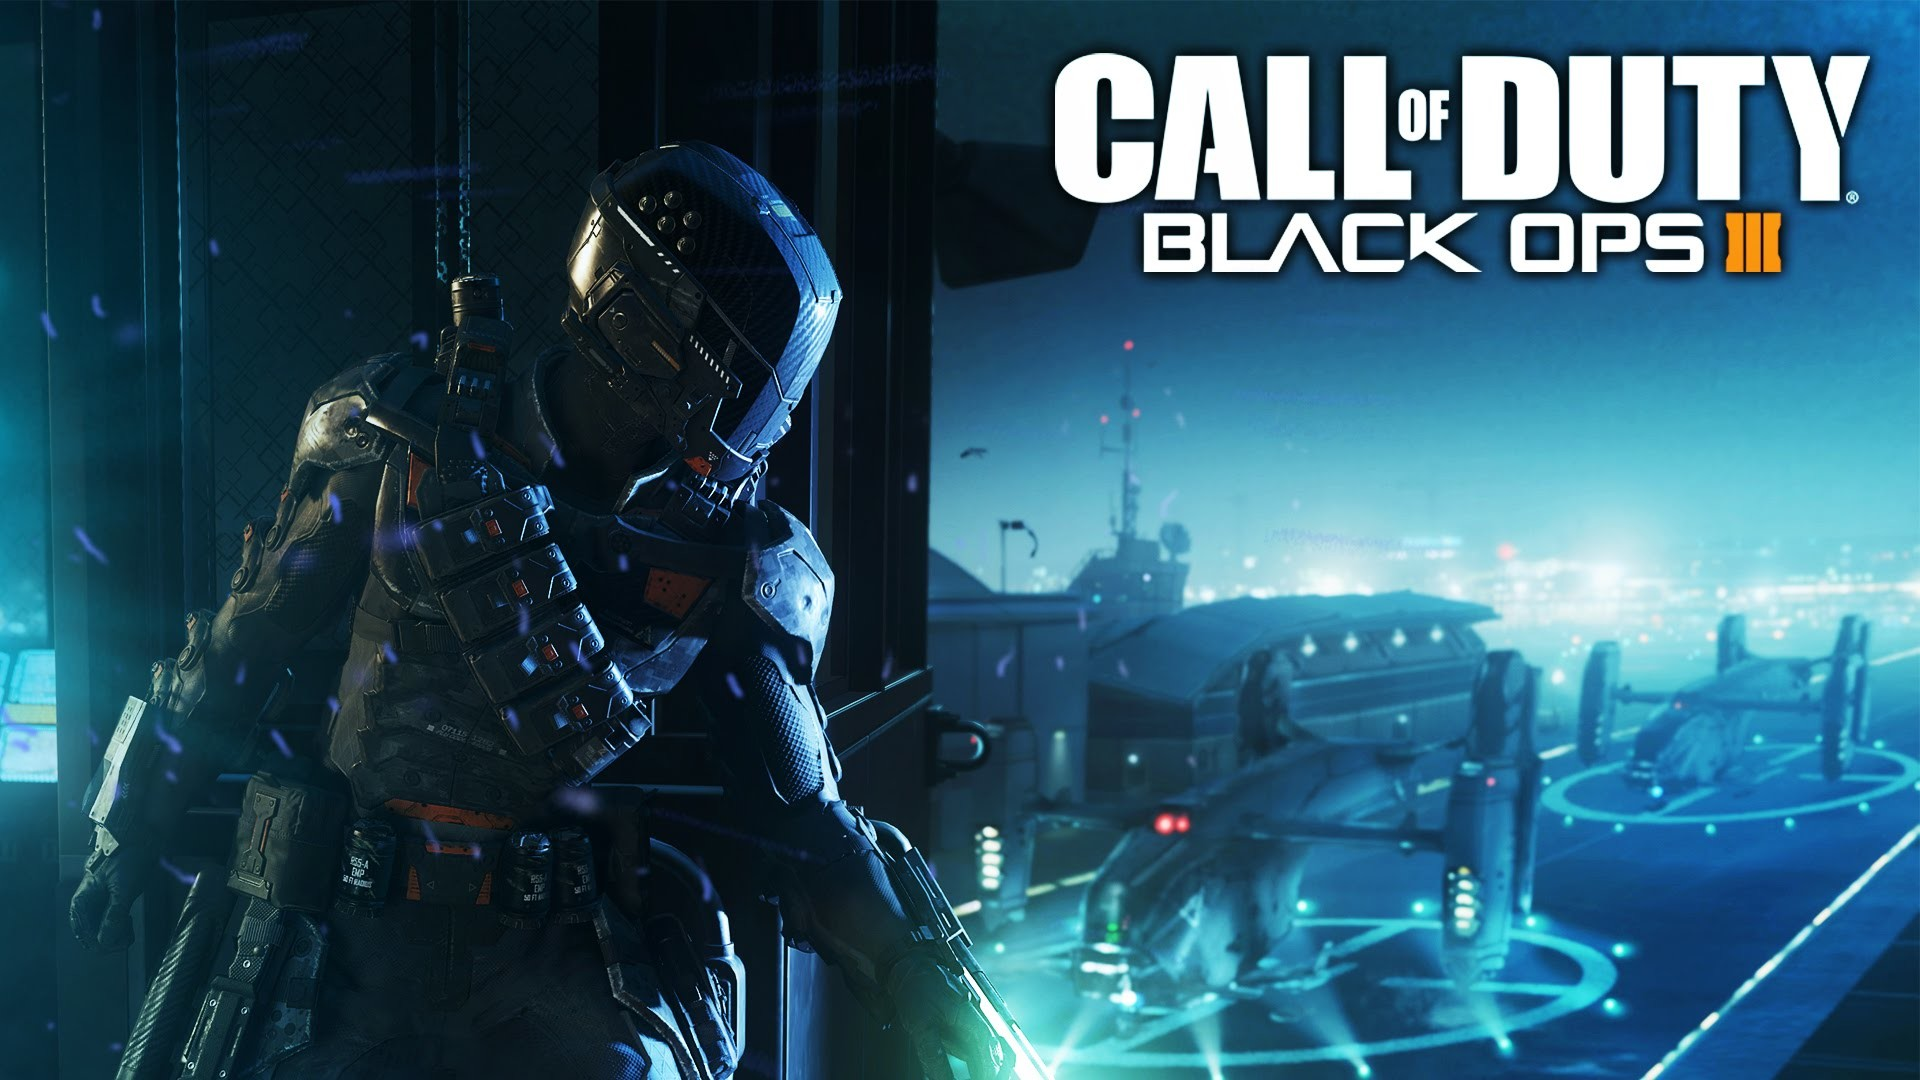 Call Of Duty Black Ops 3 Hd Wallpapers: Call Of Duty Black Ops 3 HD Wallpapers ·① WallpaperTag